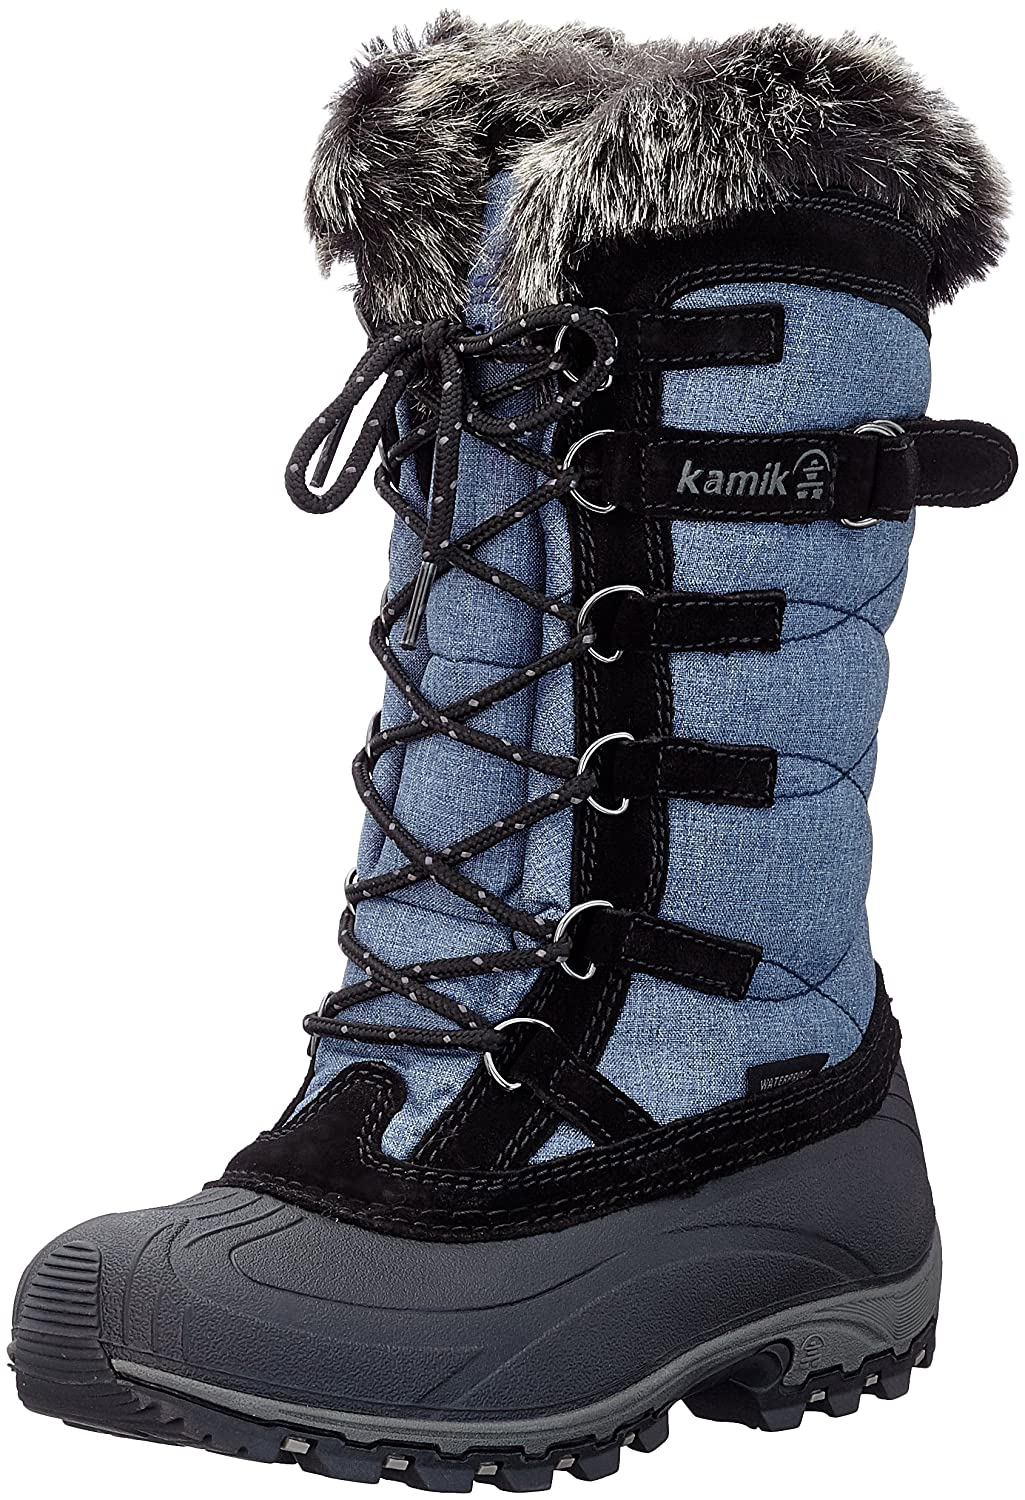 Kamik Women's Snowvalley Snow Boot B01N6LXRCE 10 D US|Blue Jeans